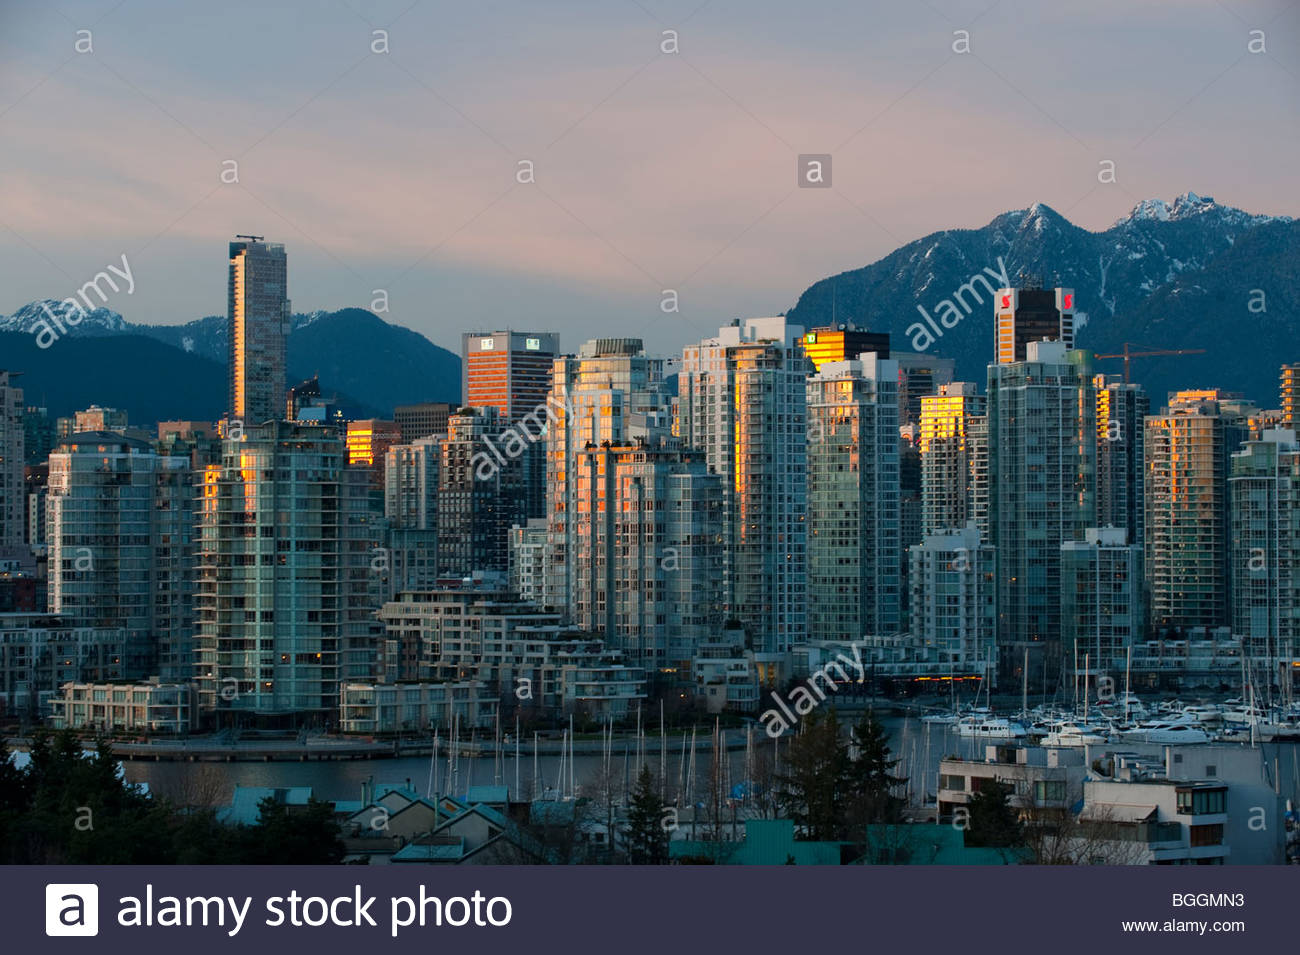 Apartments and condominiums along False Creek in Vancouver, BC Canada - Stock Image